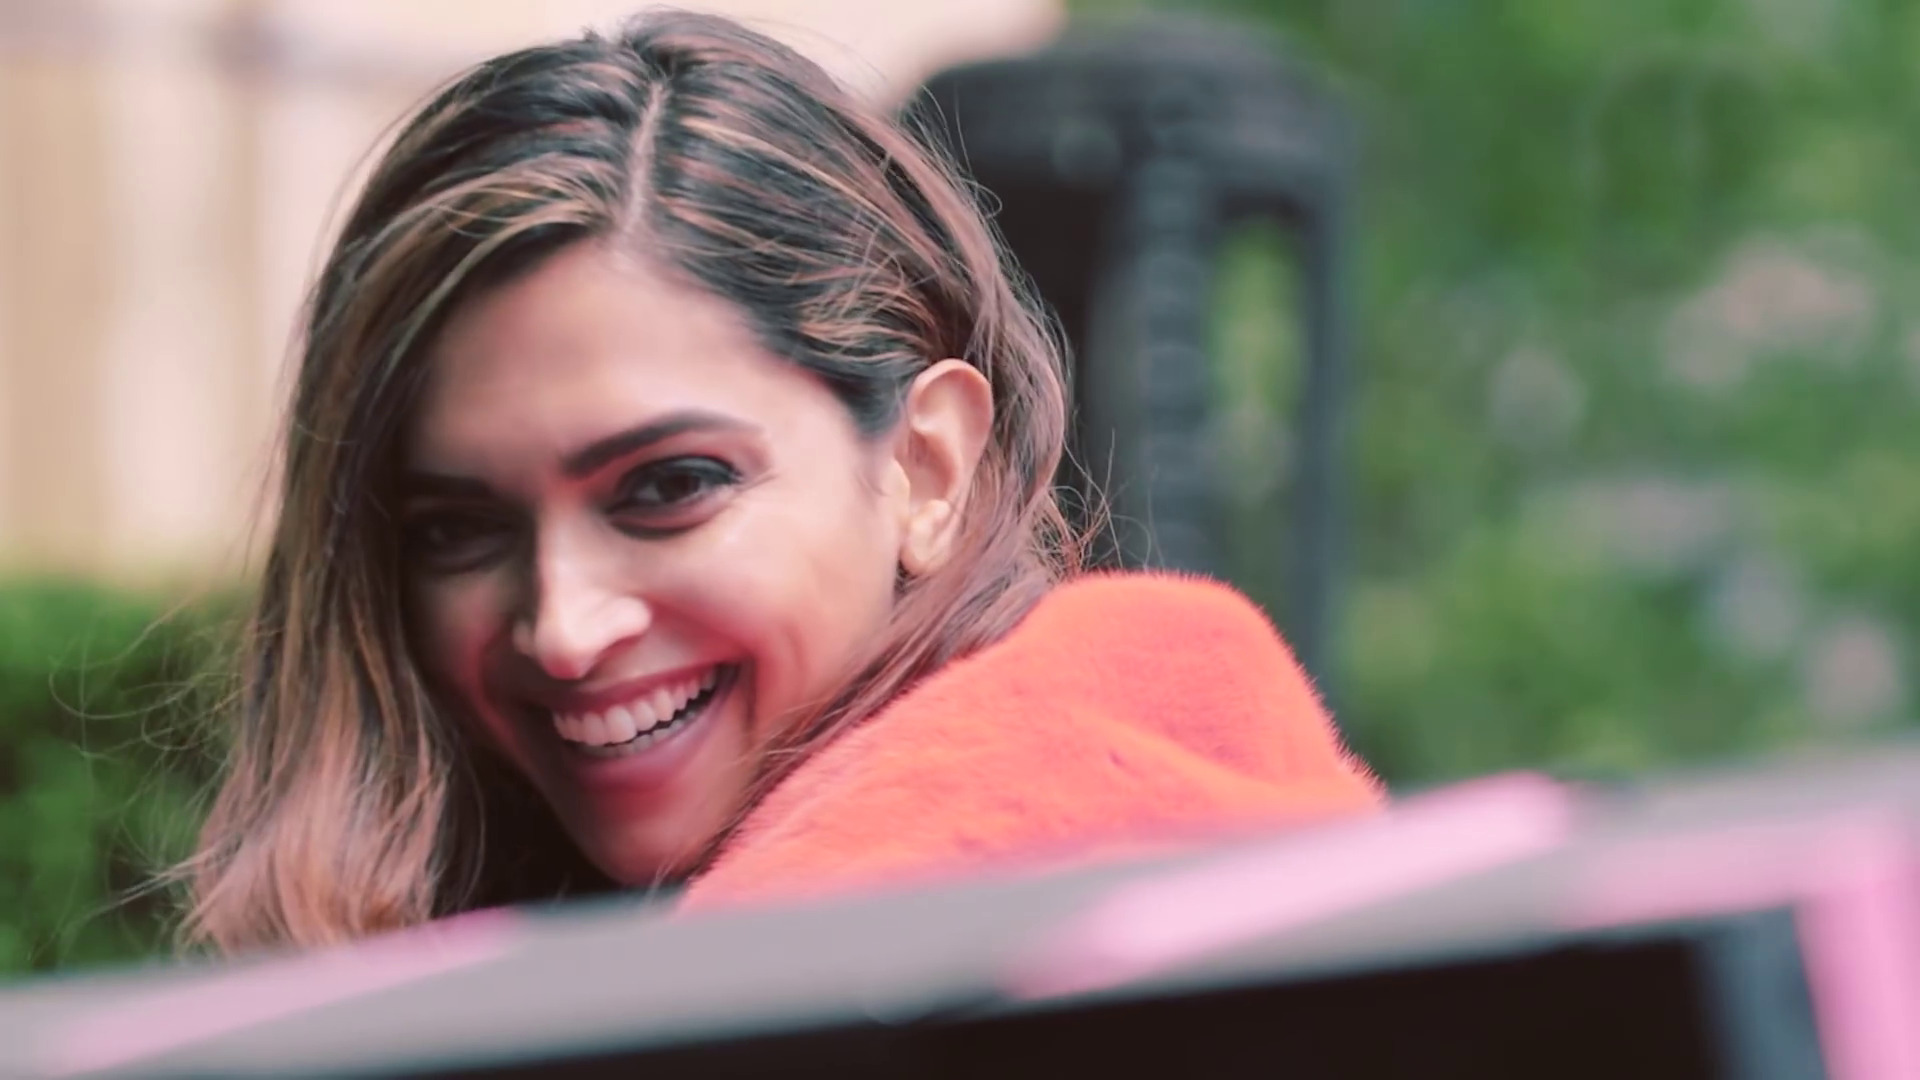 deepika padukone hd wallpapers | hd wallpapers